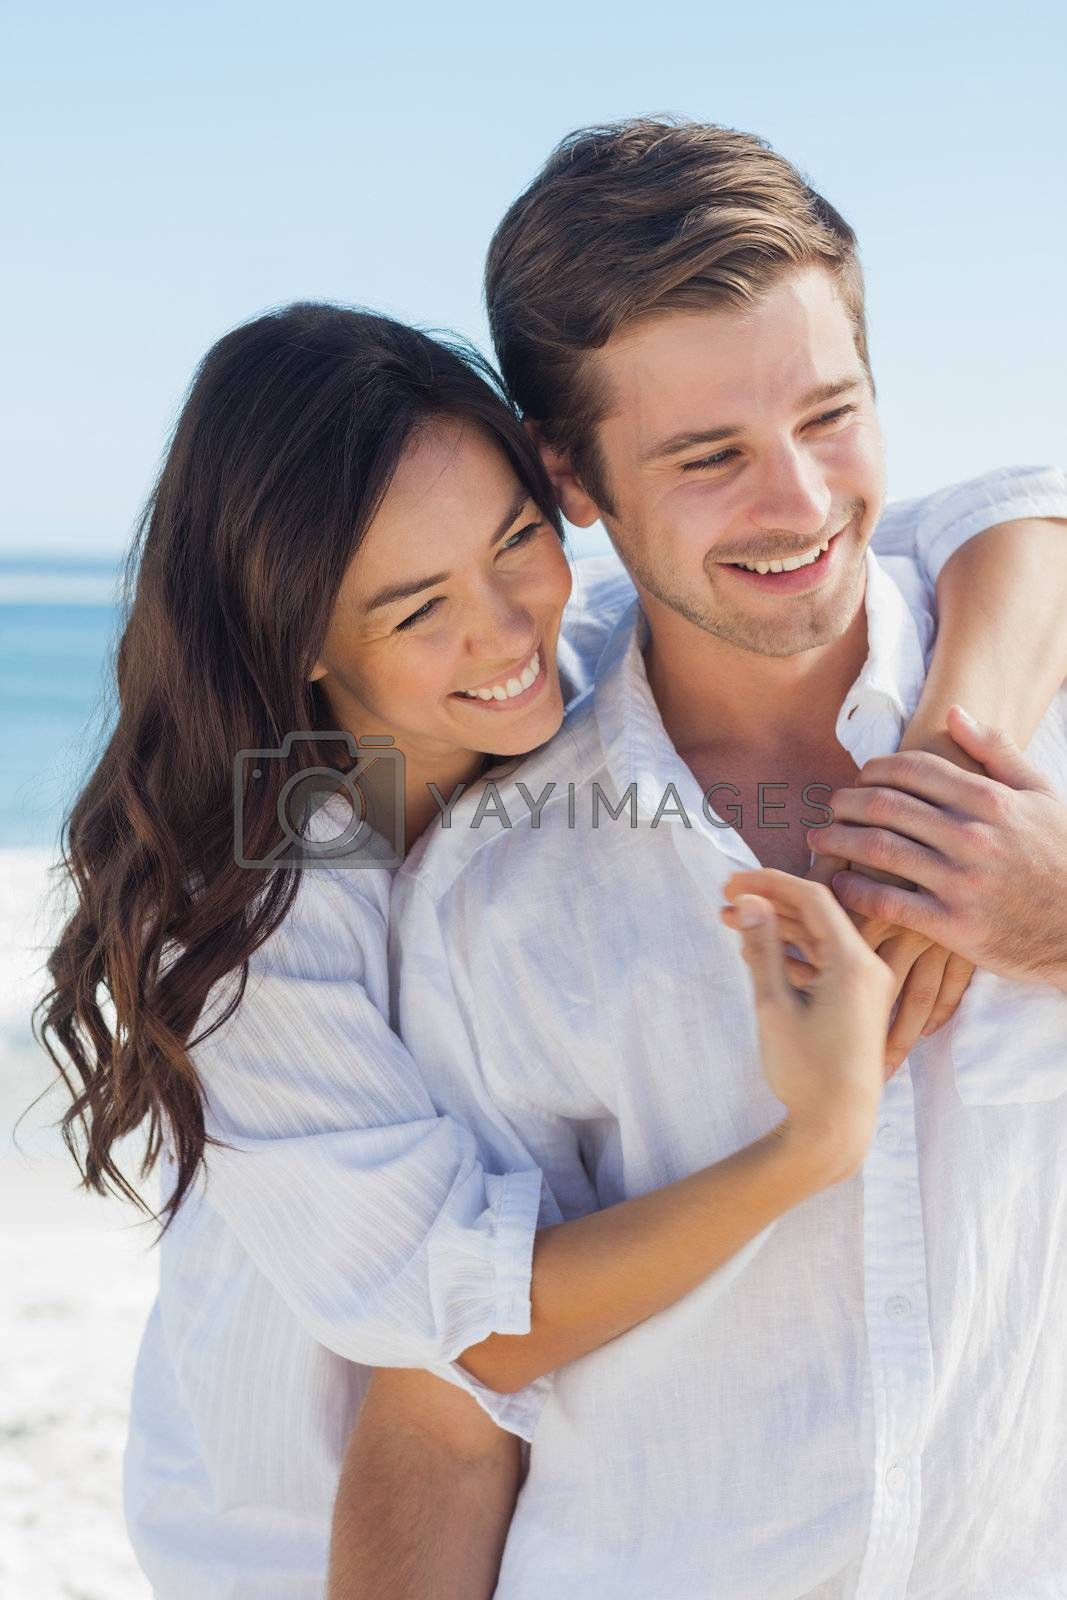 Smiling couple embracing each other on the beach by Wavebreakmedia